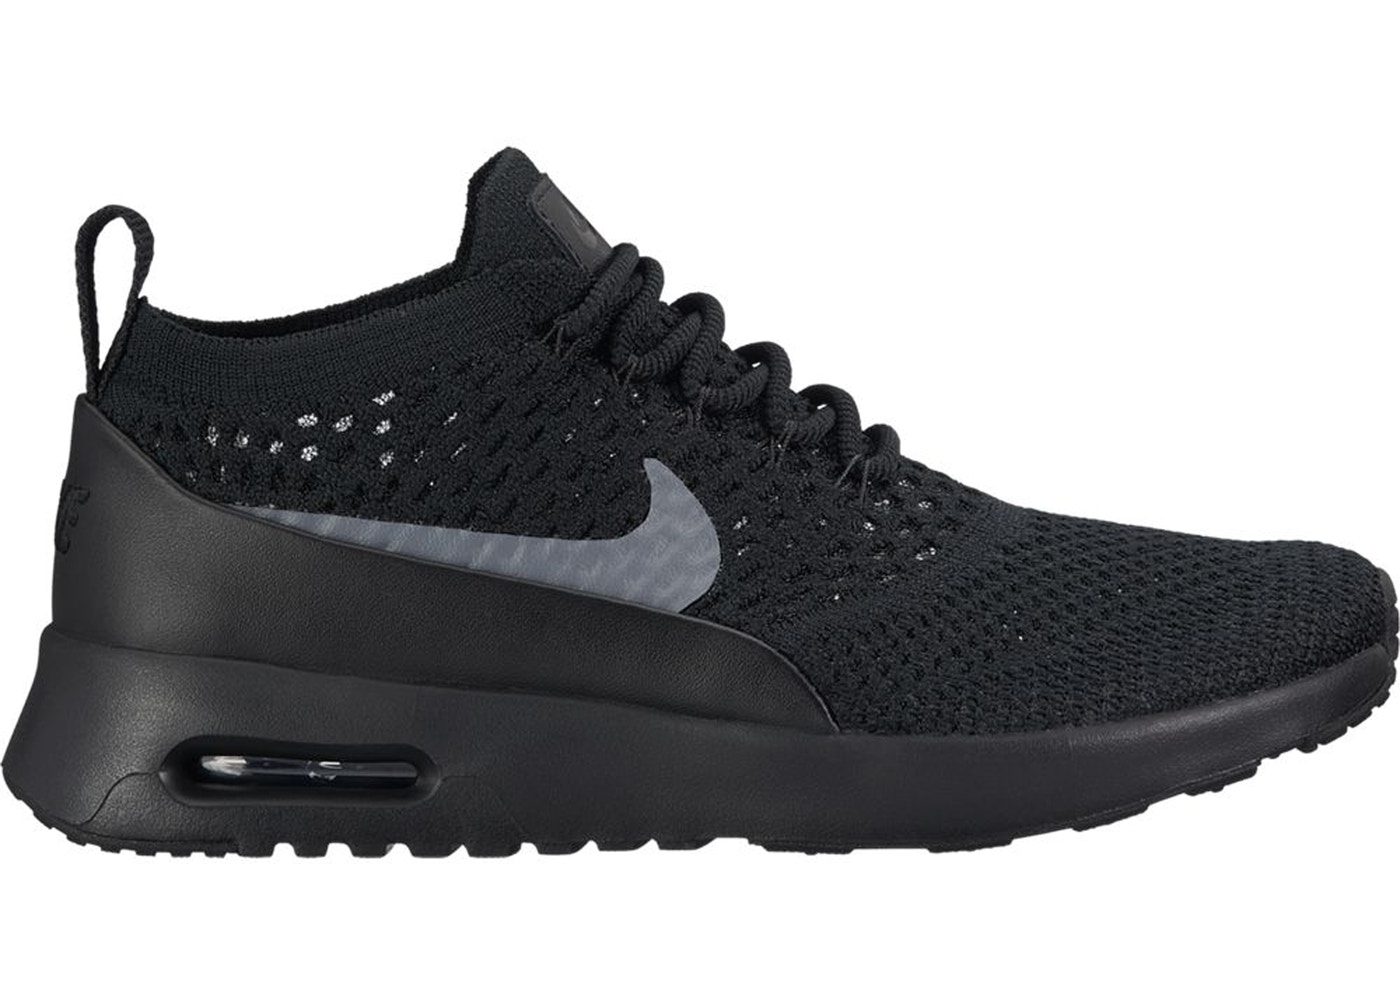 separation shoes c23fd 29e2d Air Max Thea Ultra Flyknit Black Dark Grey (W) - 881175-004